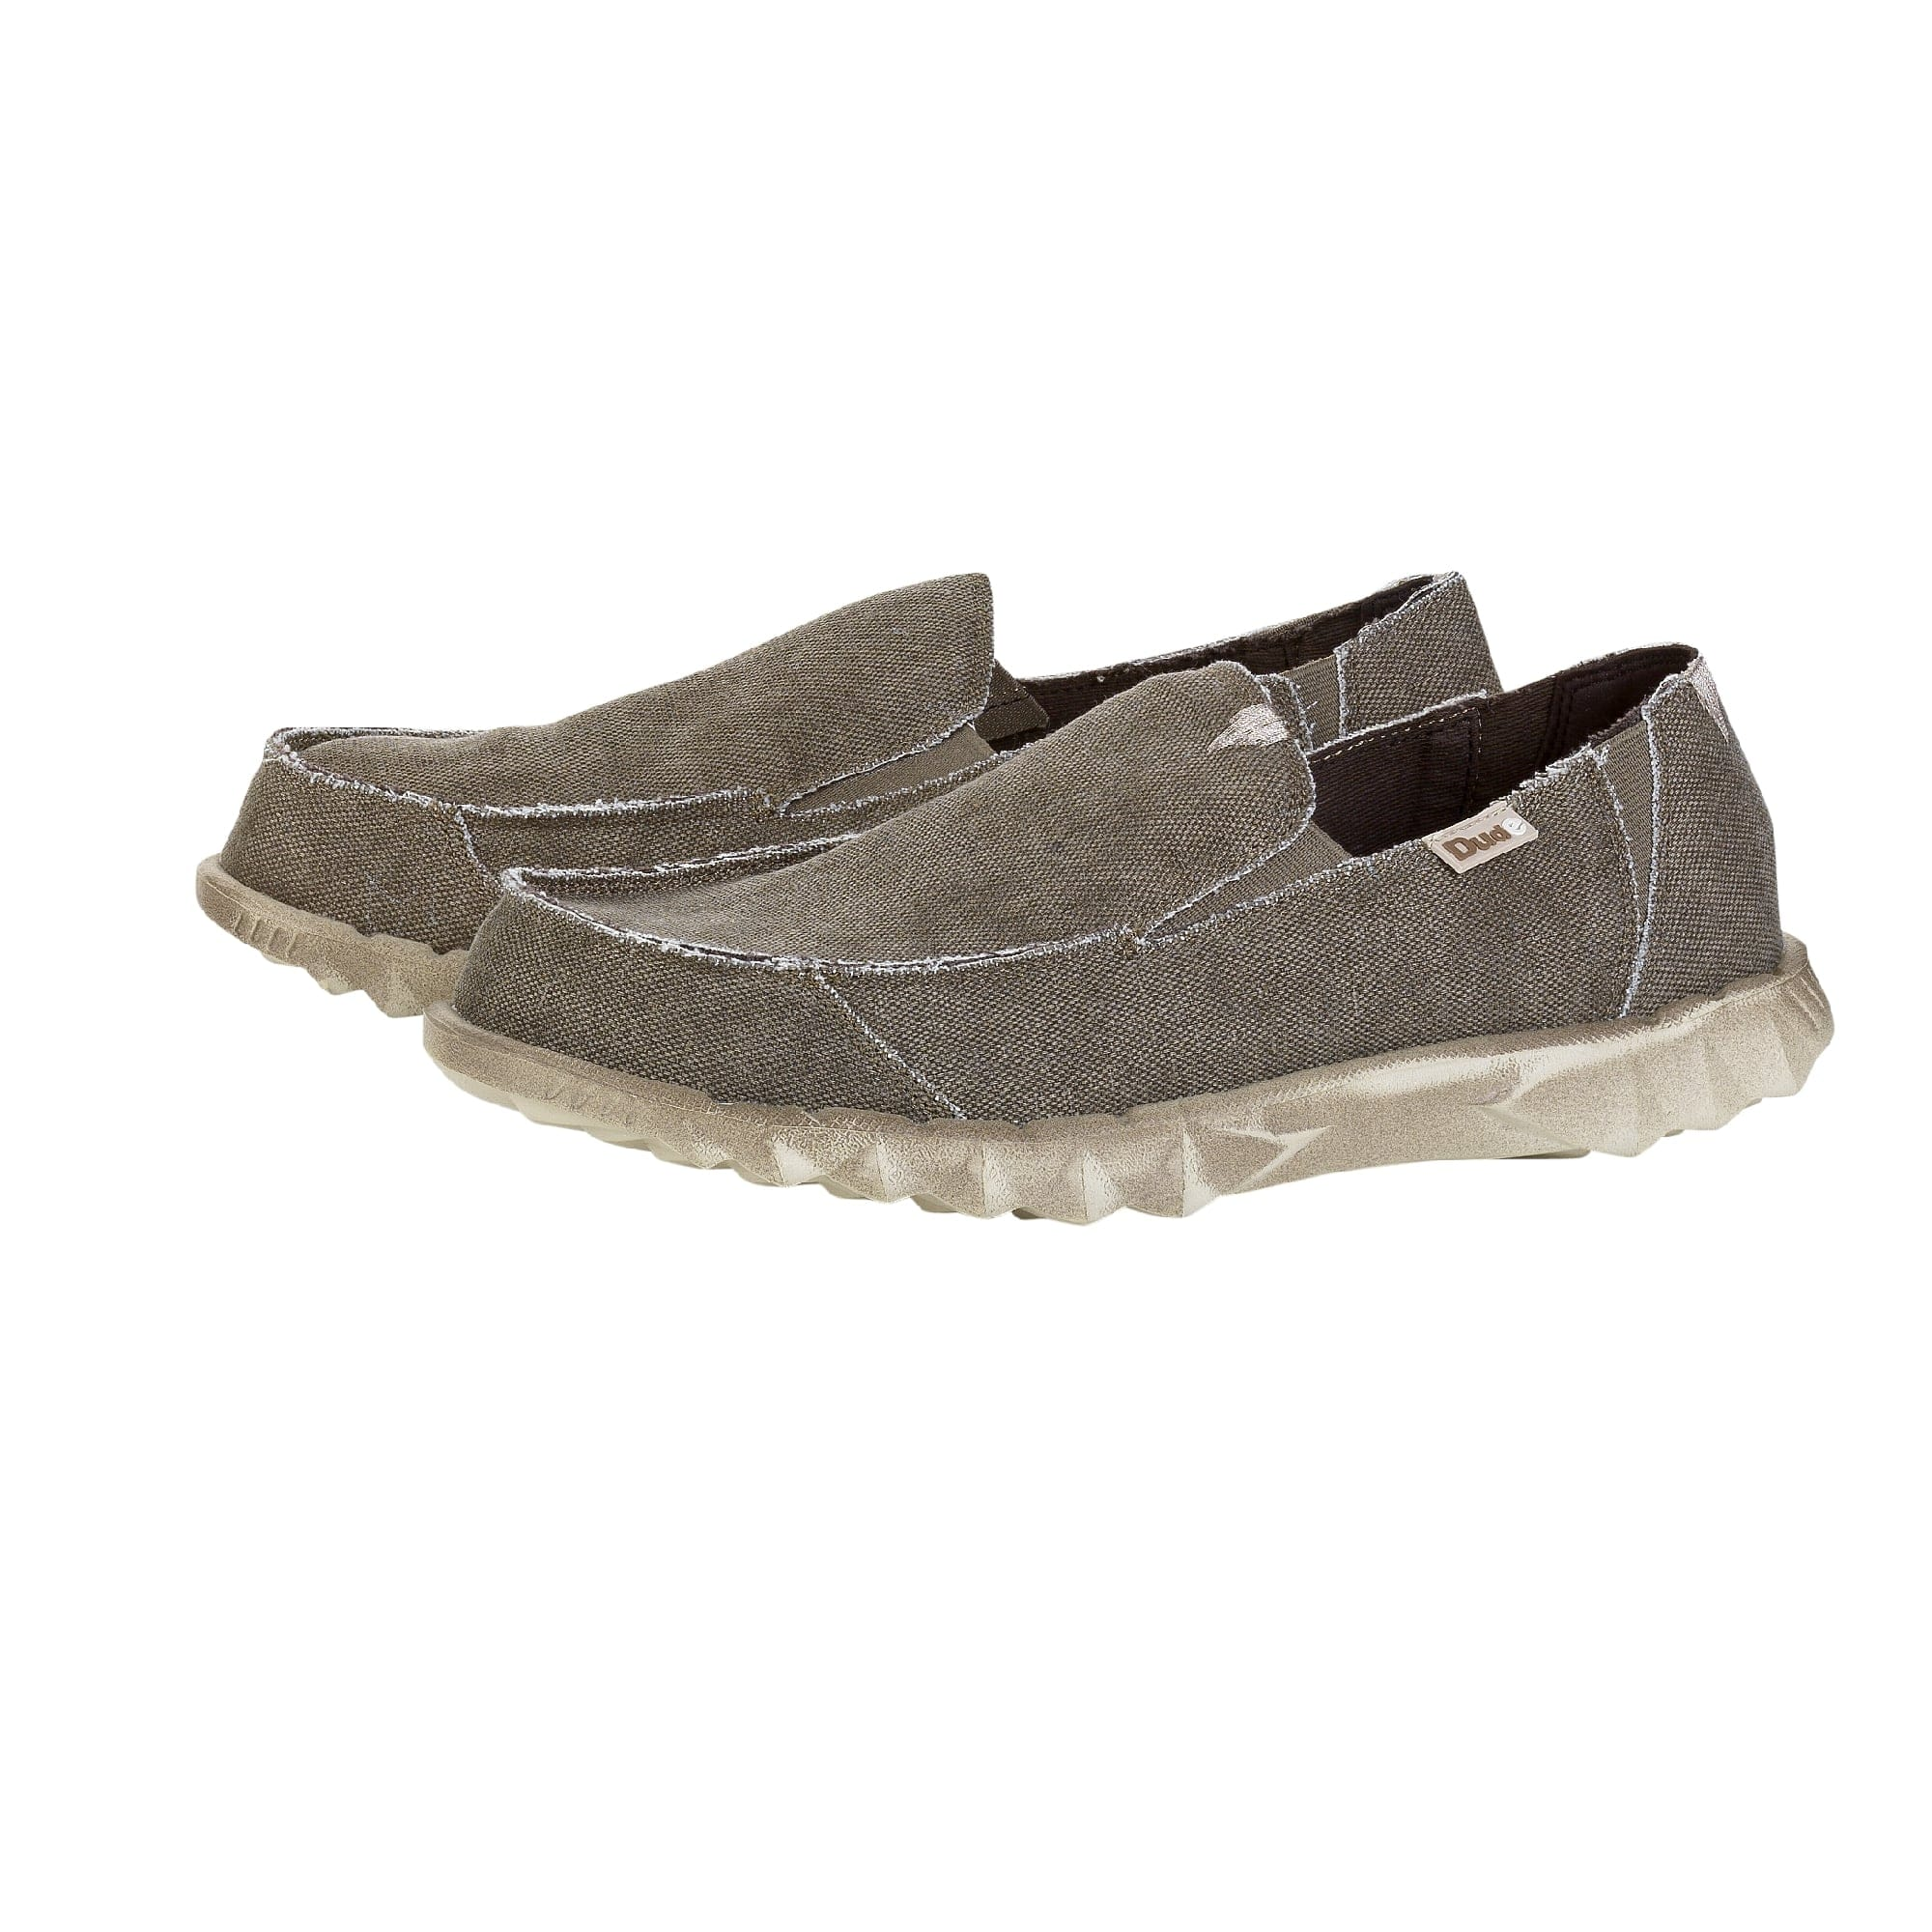 Hey Dude Shoes Farty Chocolate Suede Slip On Mule